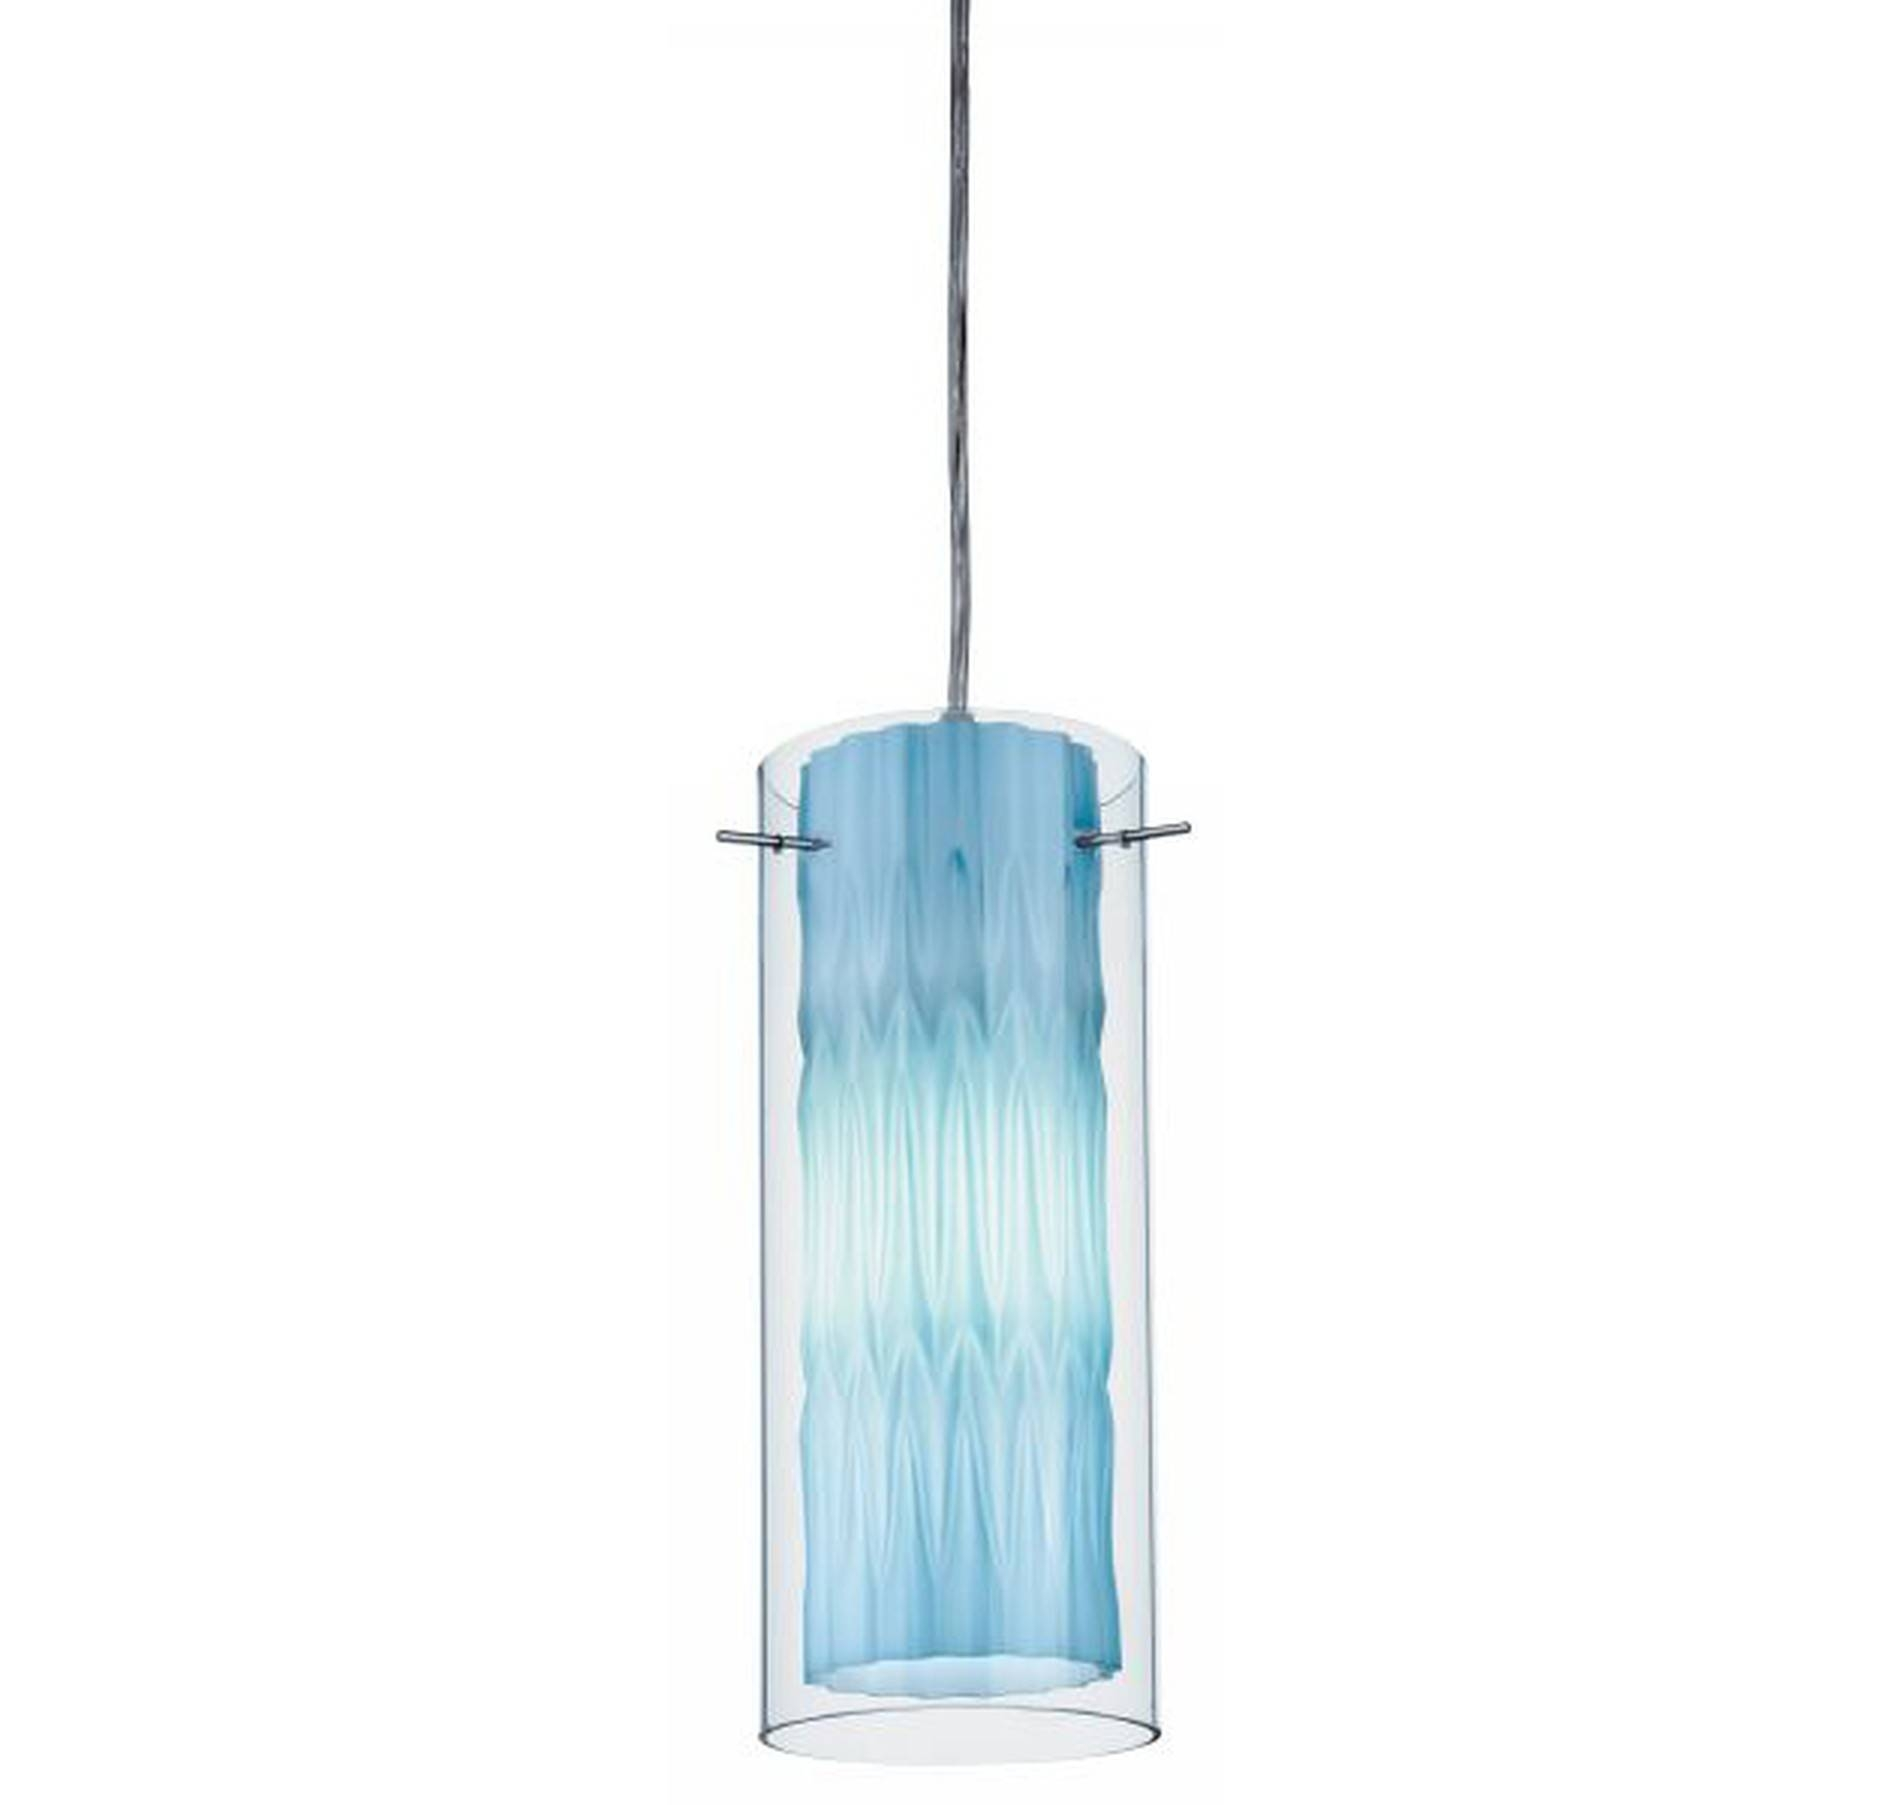 Lovely Blue Mini Pendant Lights 43 In Unique Pendant Lighting With in Unique Mini Pendant Lights (Image 5 of 15)